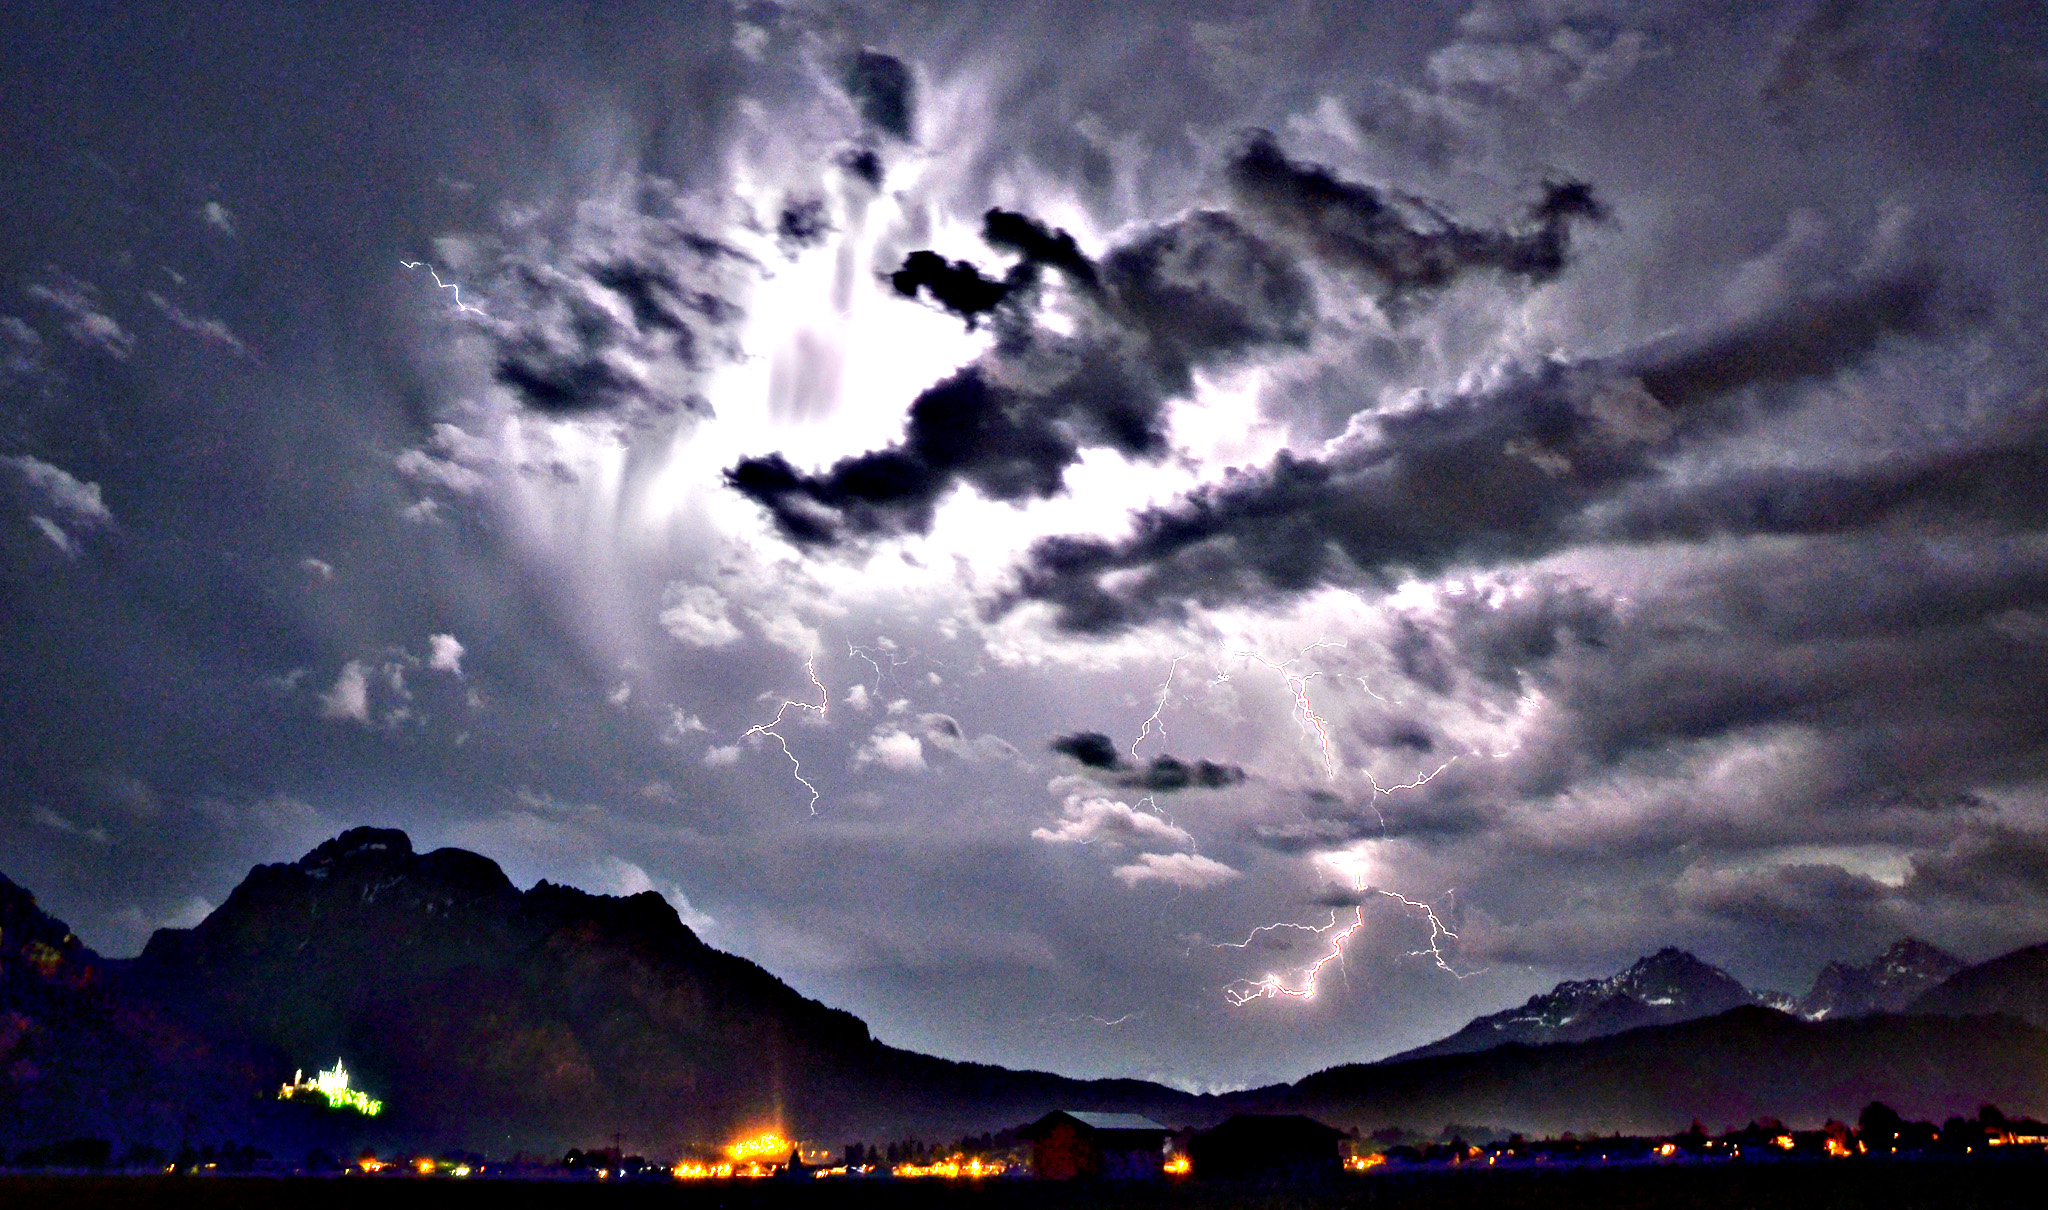 The evening sky in Schwangau, southern Germany, is illuminated by lightning during thunderstorms